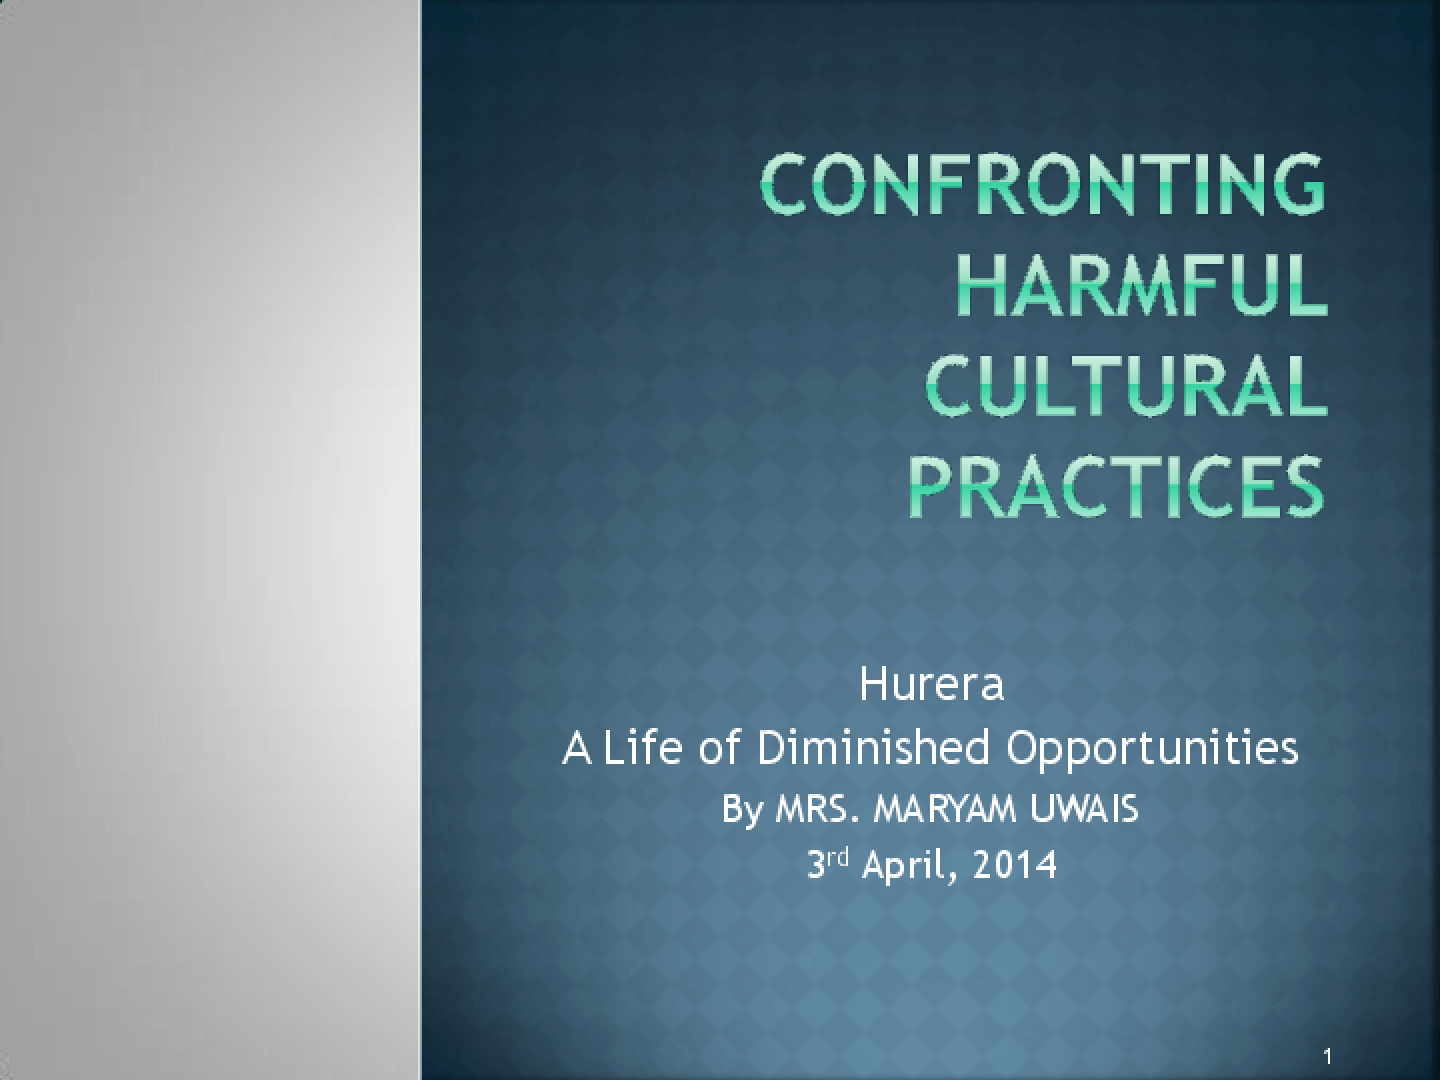 Presentation on Harmful Cultural Practices